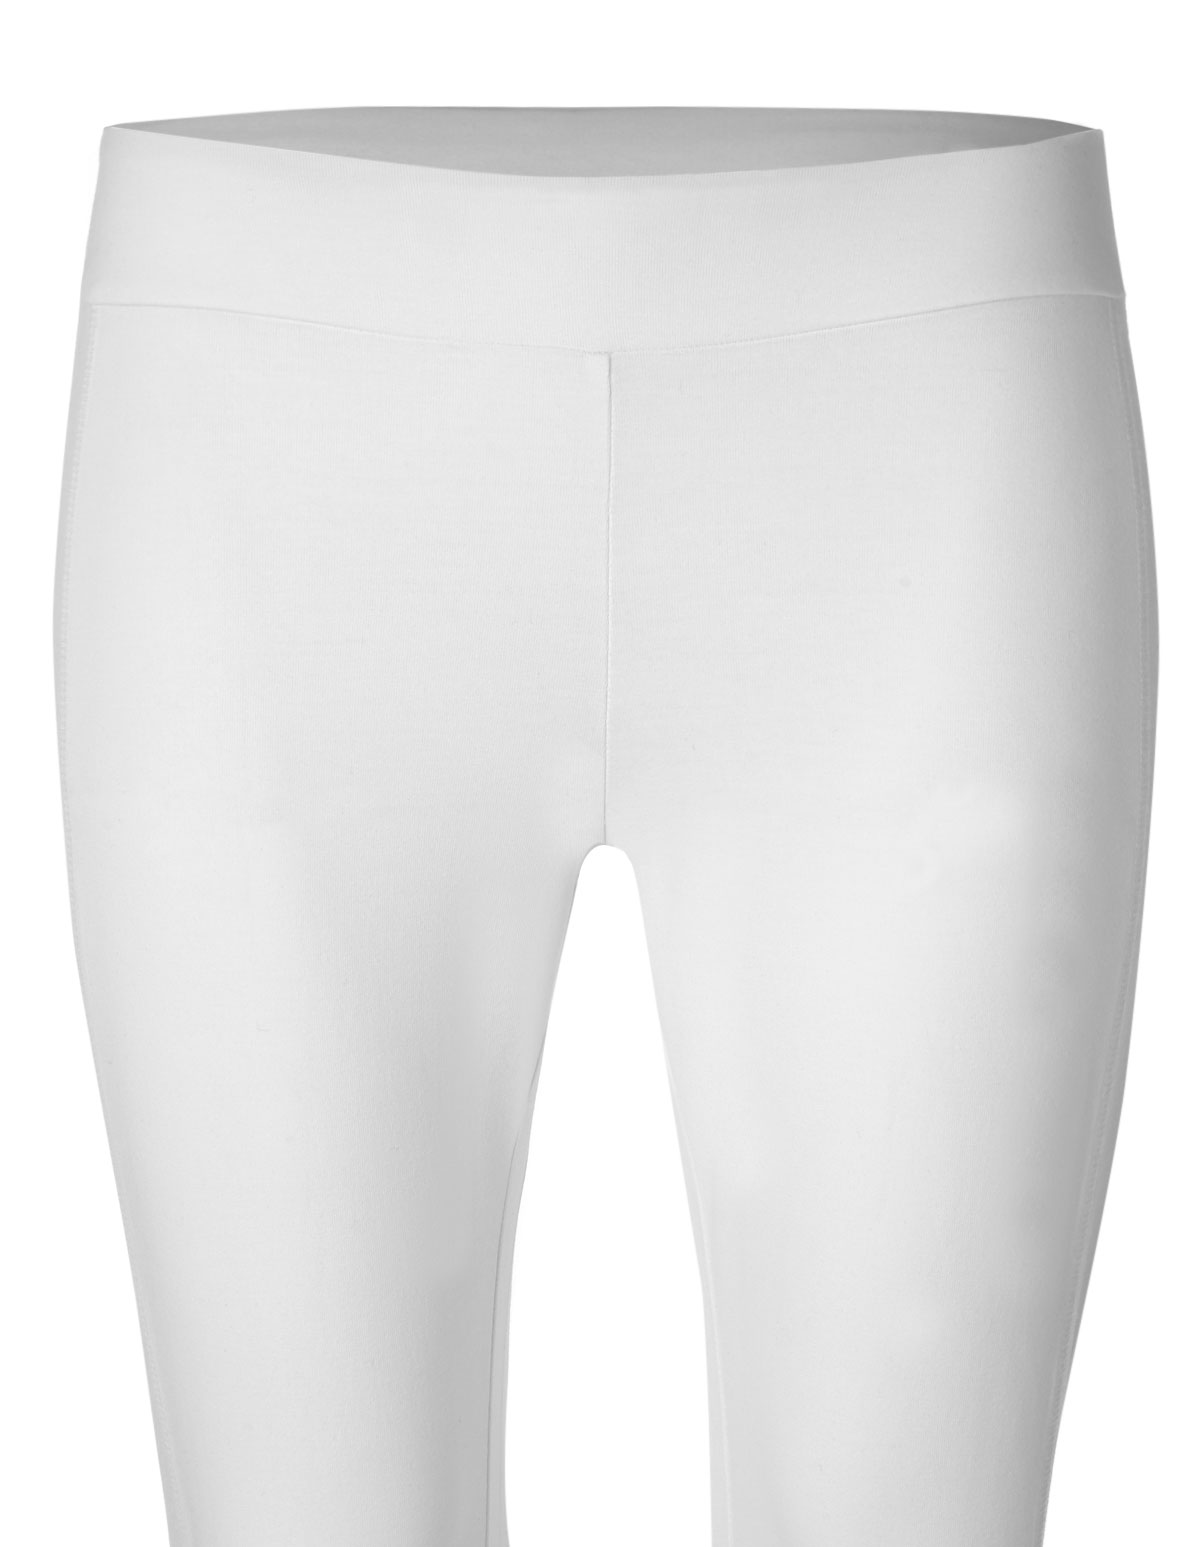 ddfab0467c0 ... White Cotton Capri Legging, White, hi-res ...